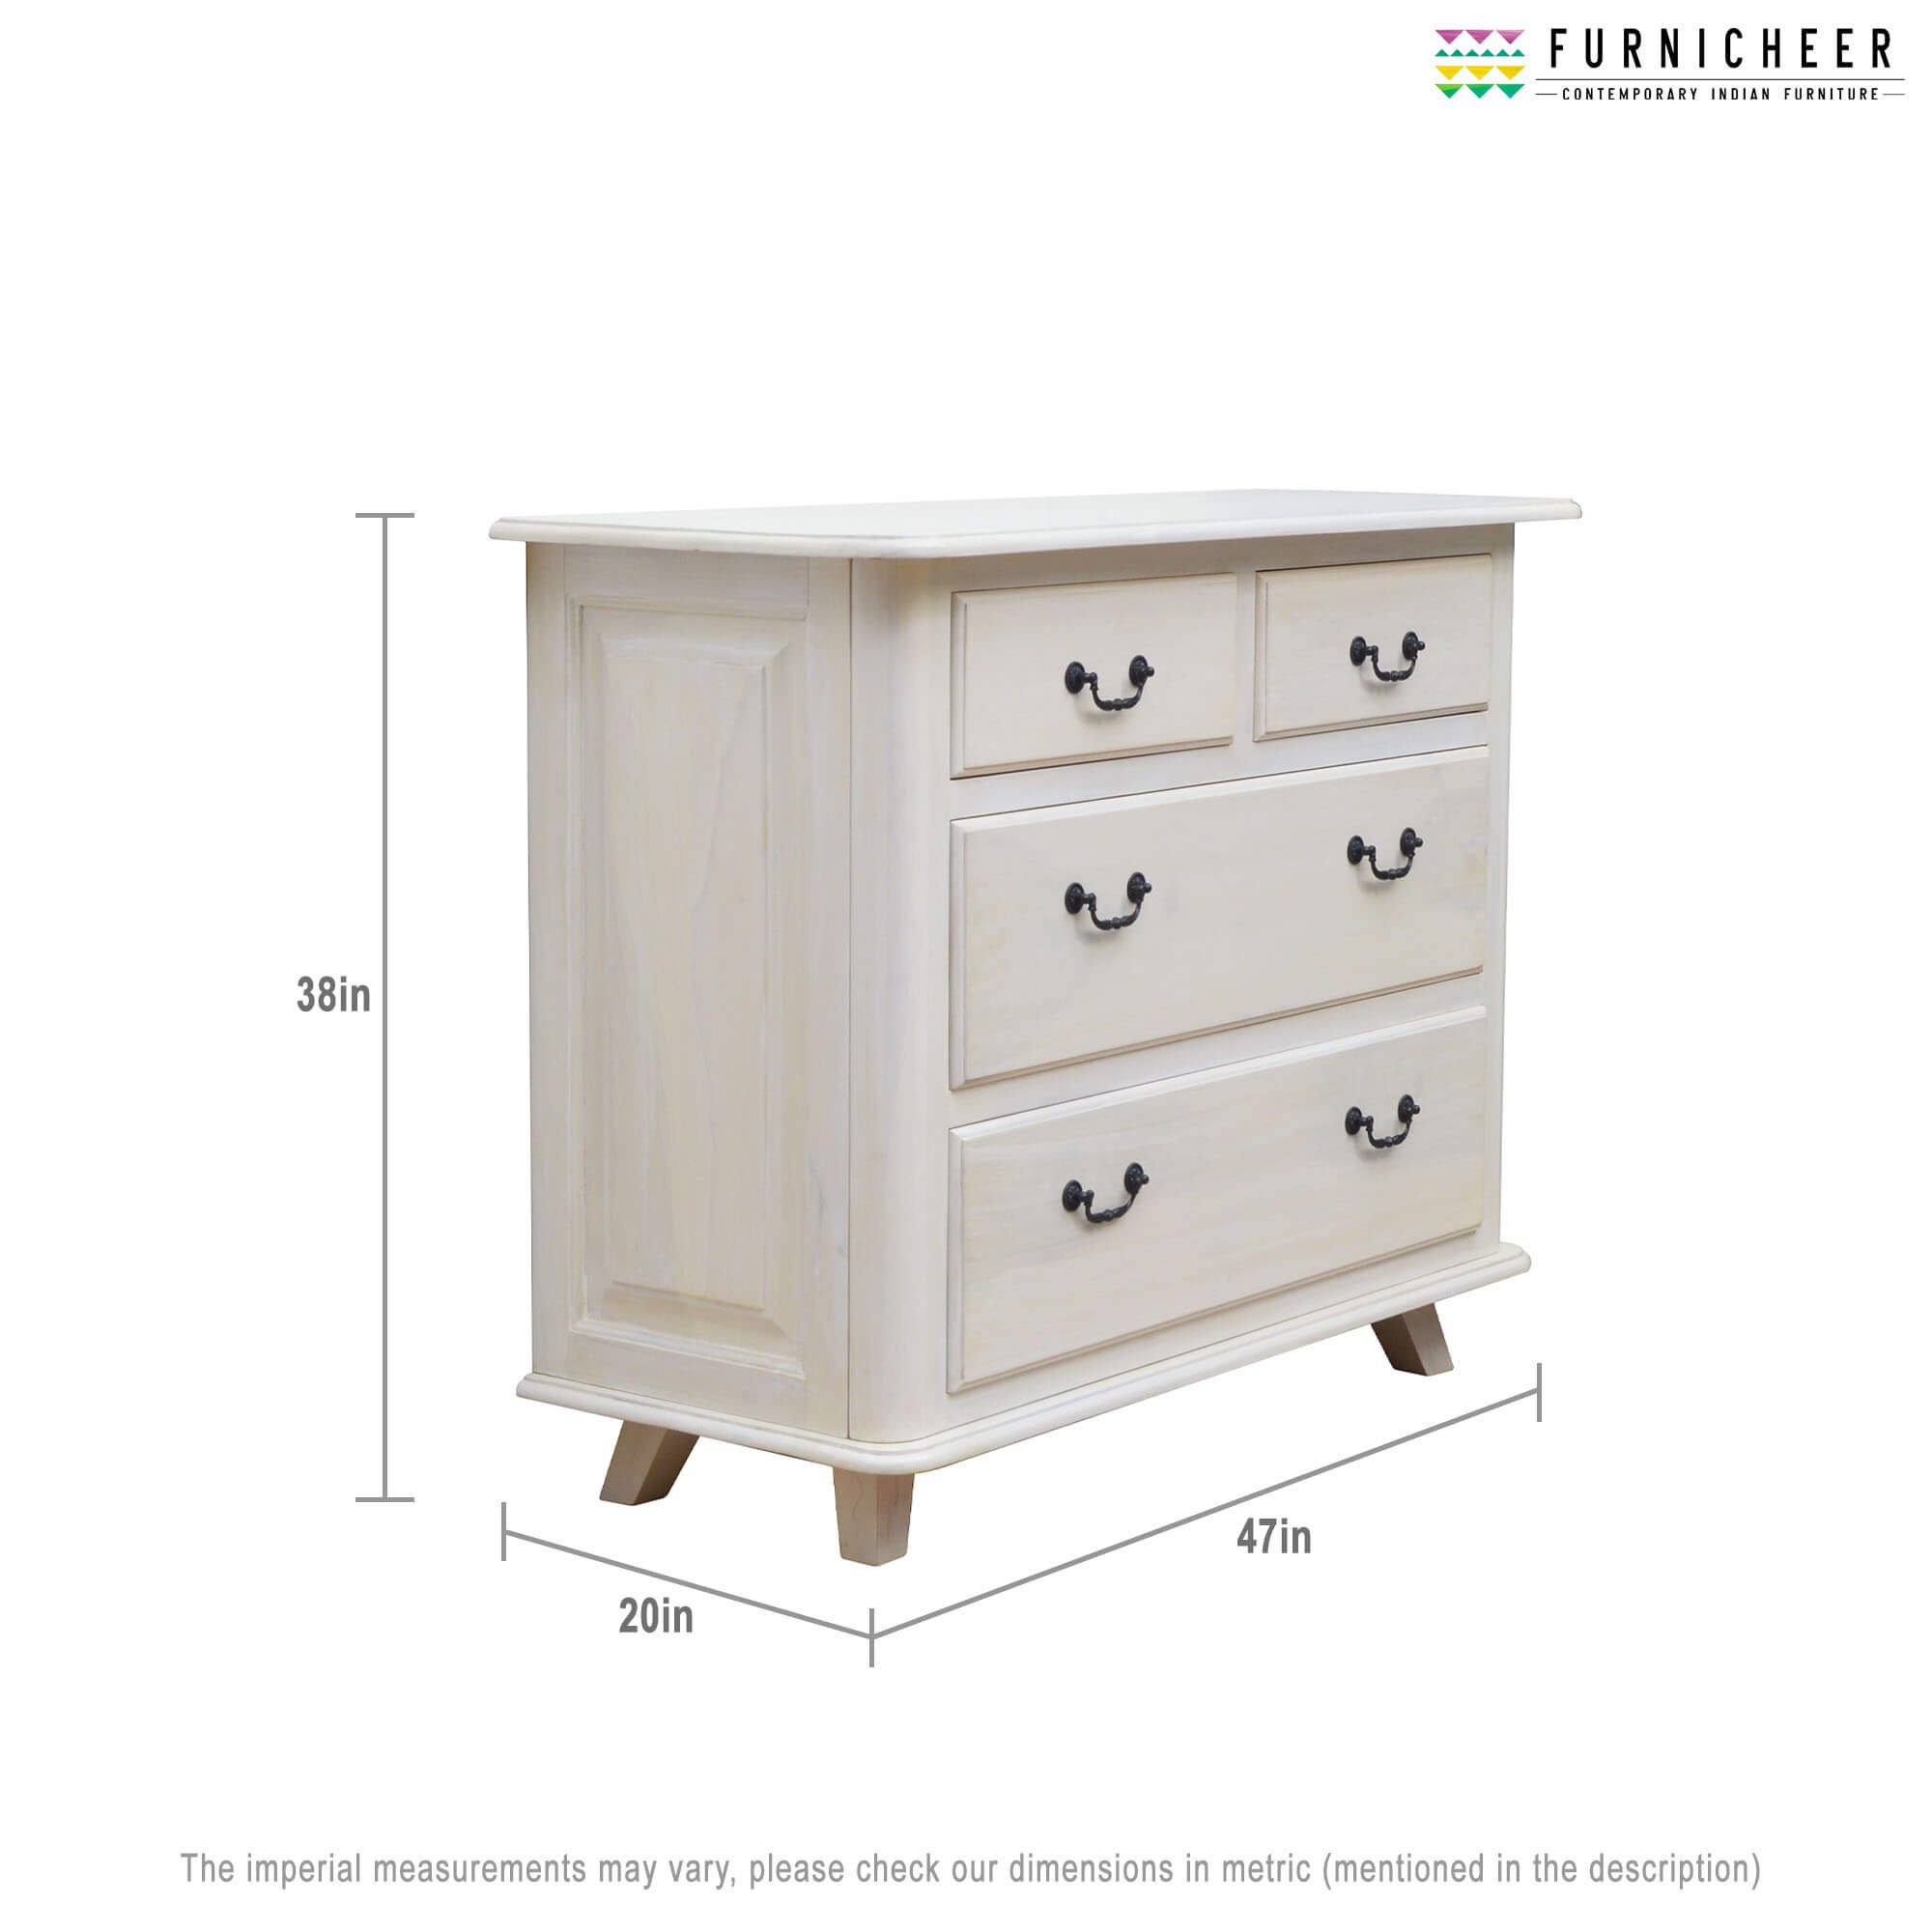 6. CHEST OF DRAWERS CDWT0001